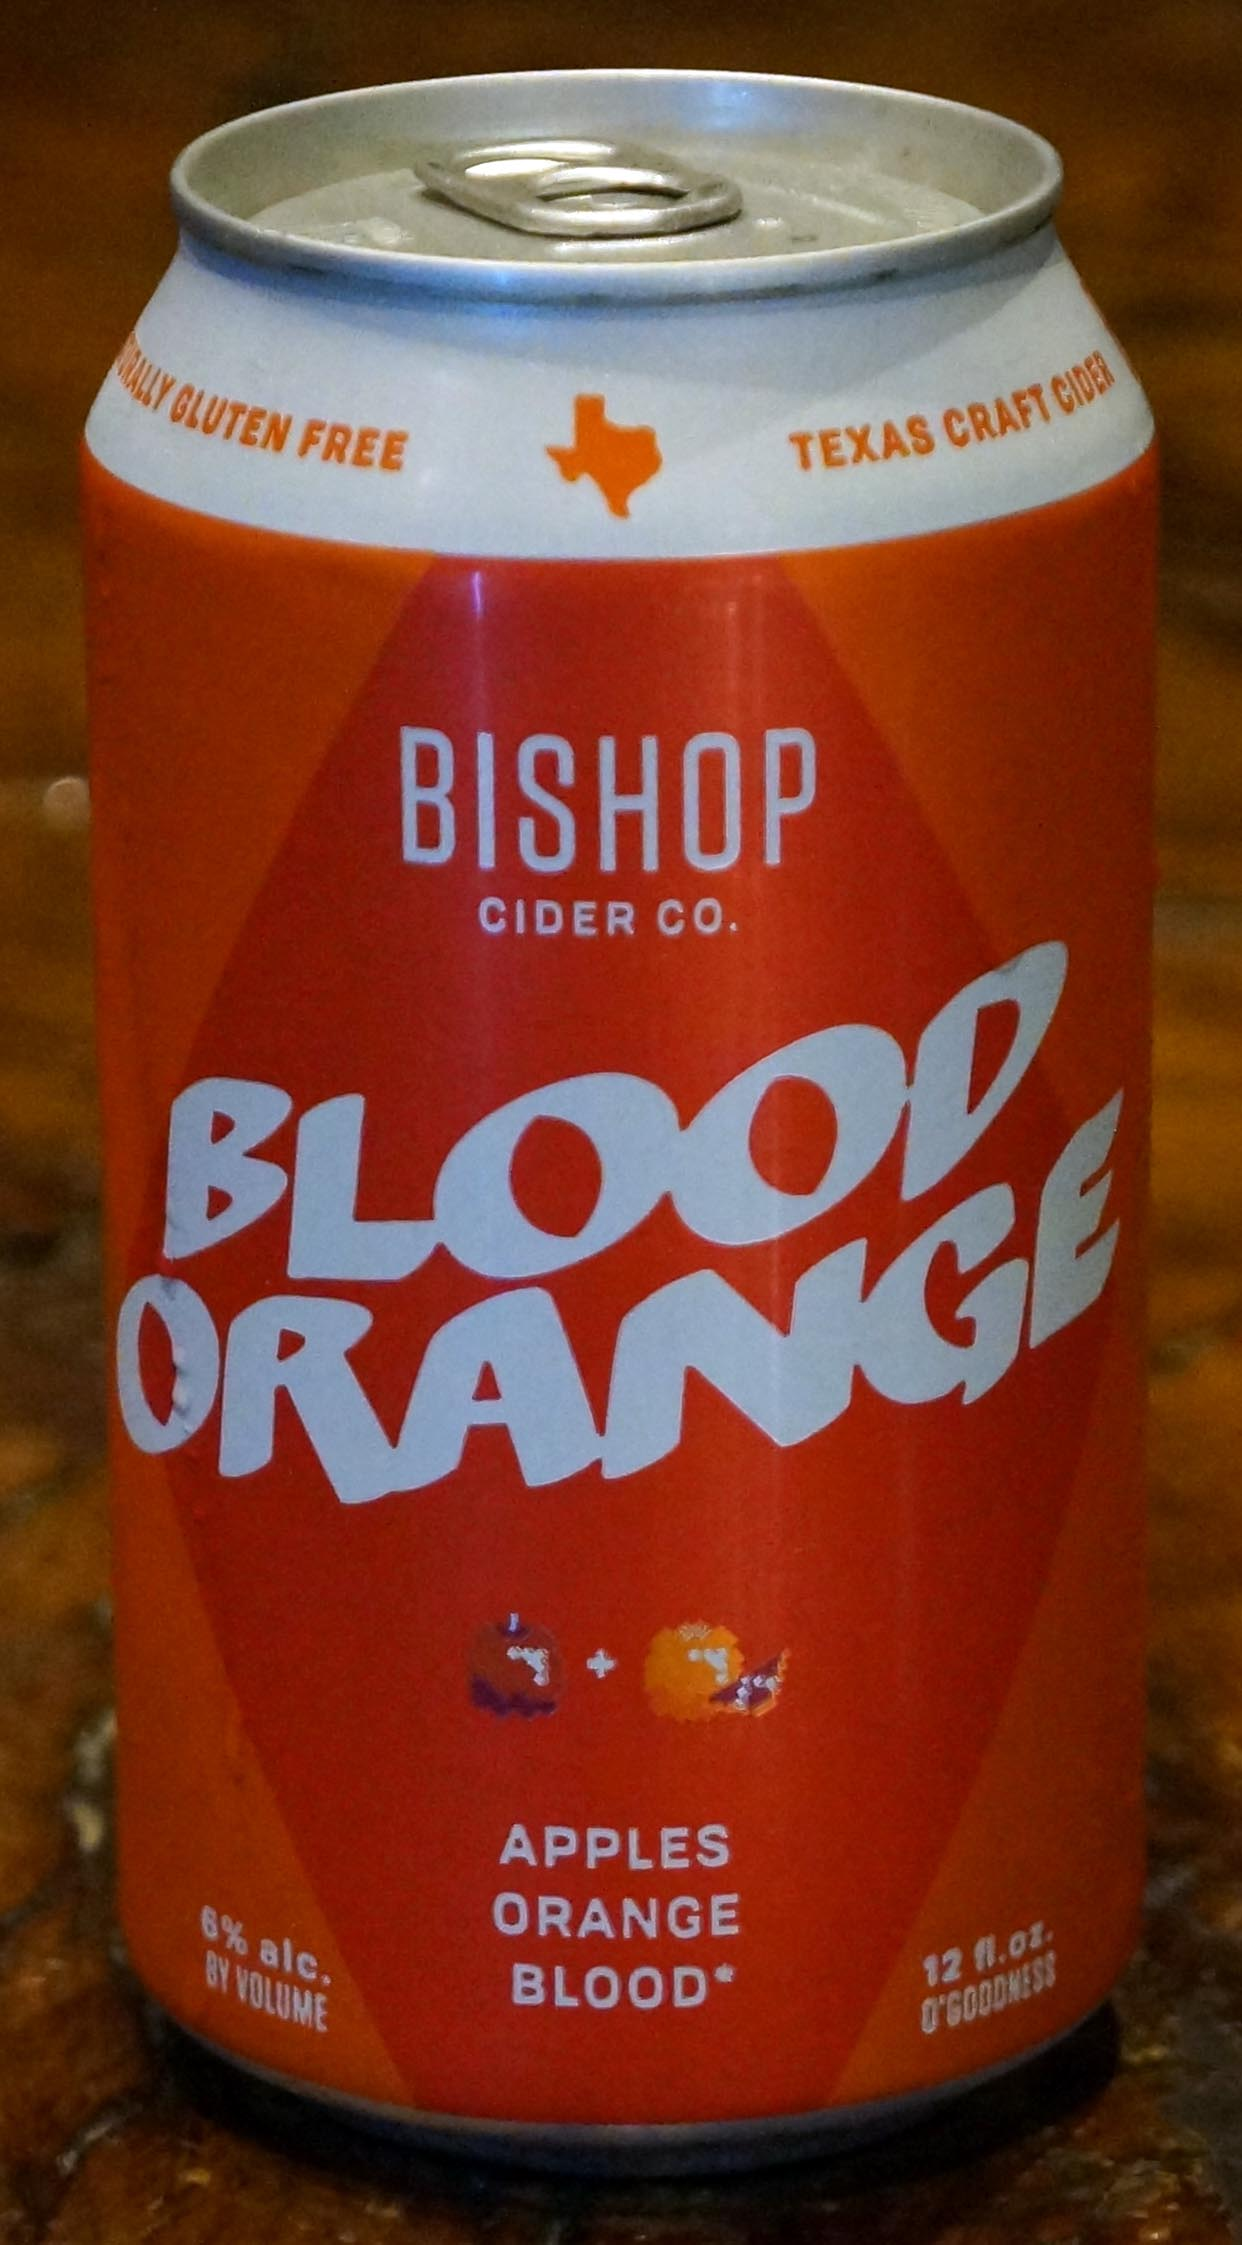 cider_bishop_BloodO.jpg